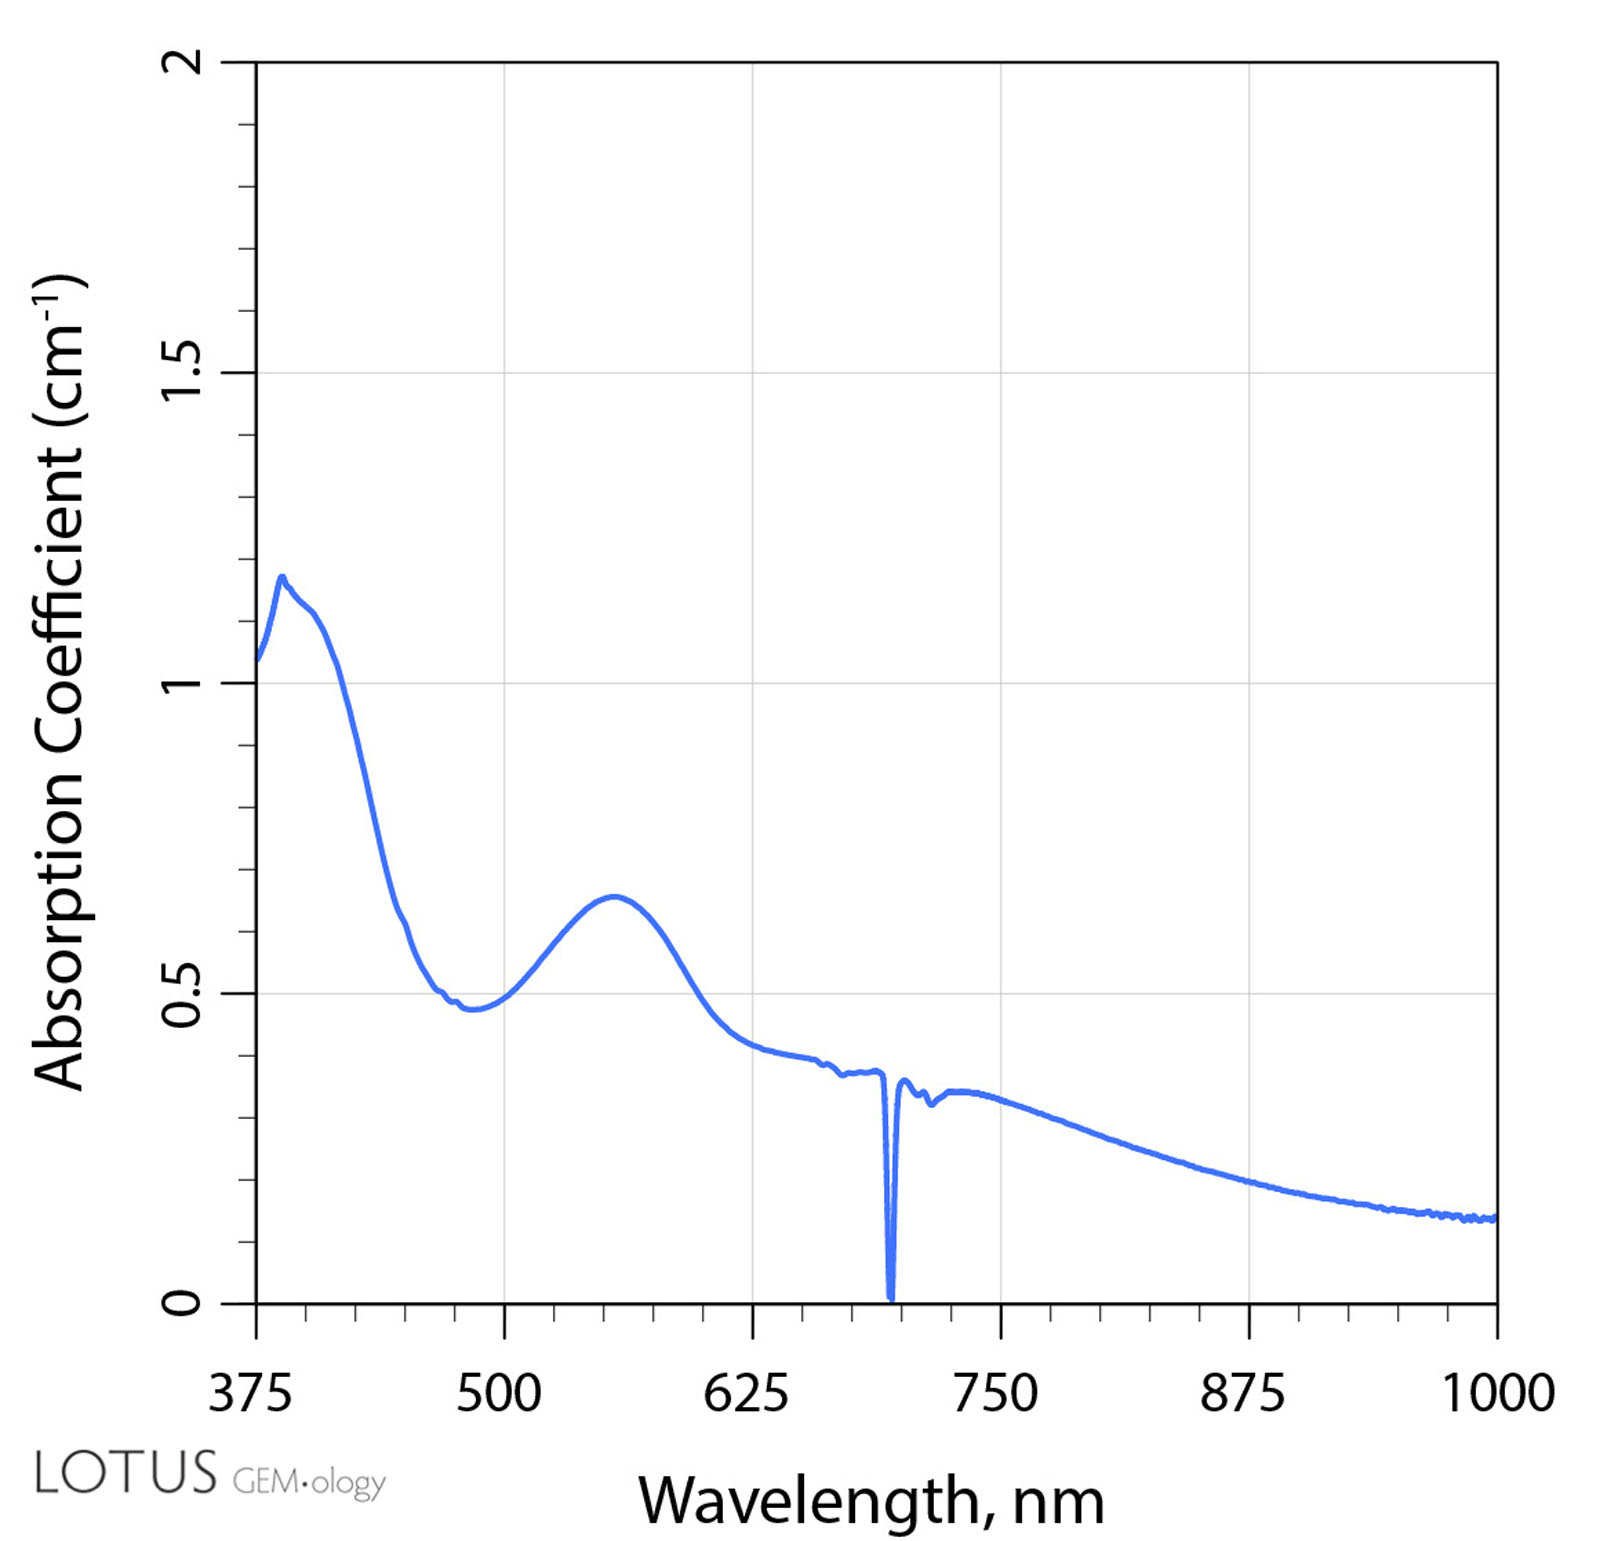 Figure 14. UV-Vis-NIR spectrum of a Madagascar sapphire Sample 1 was the only one that did not display a peak at 450 nm.